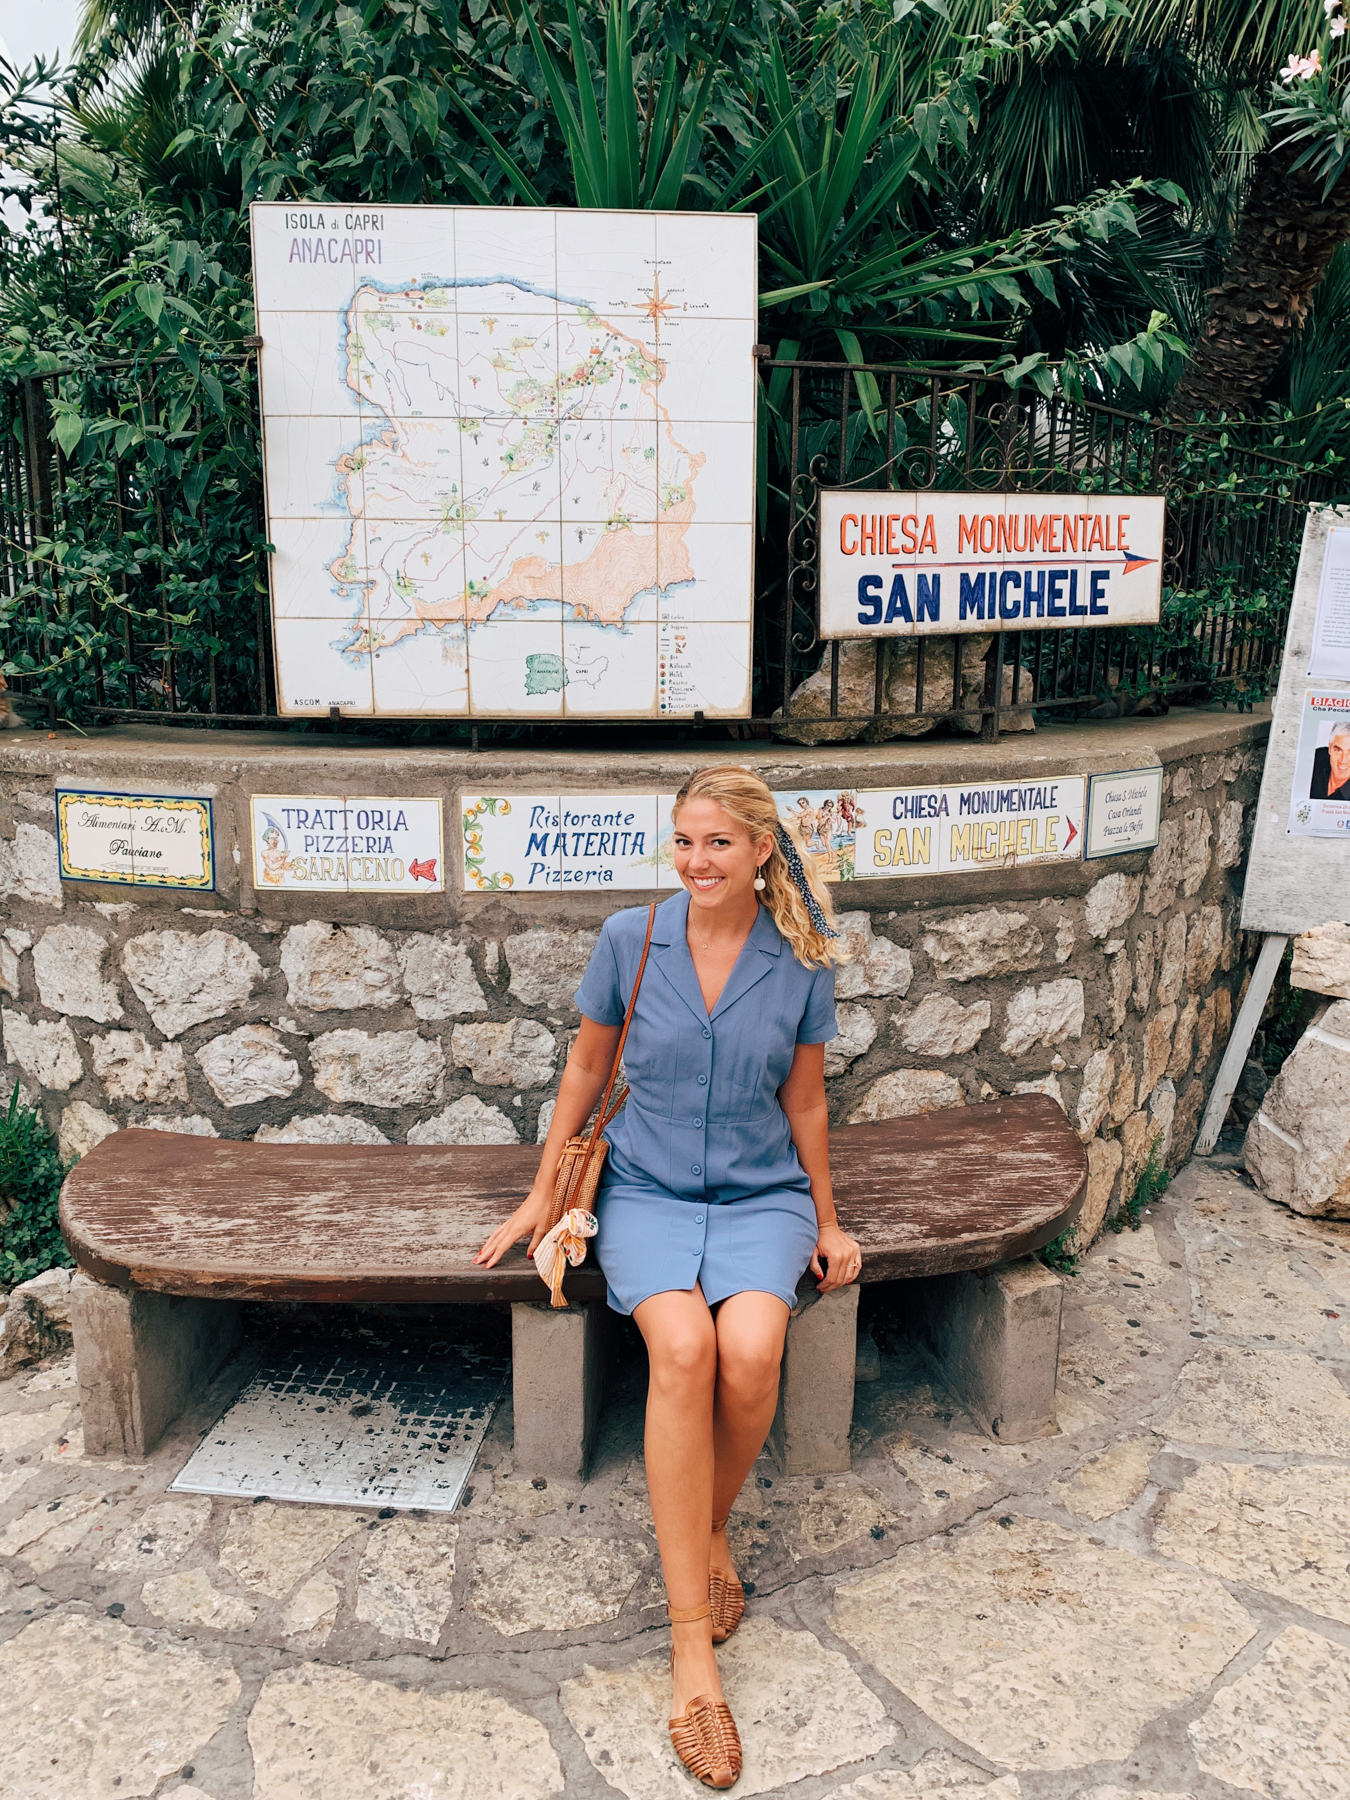 Me posing next to the cute maps and directional arrows.